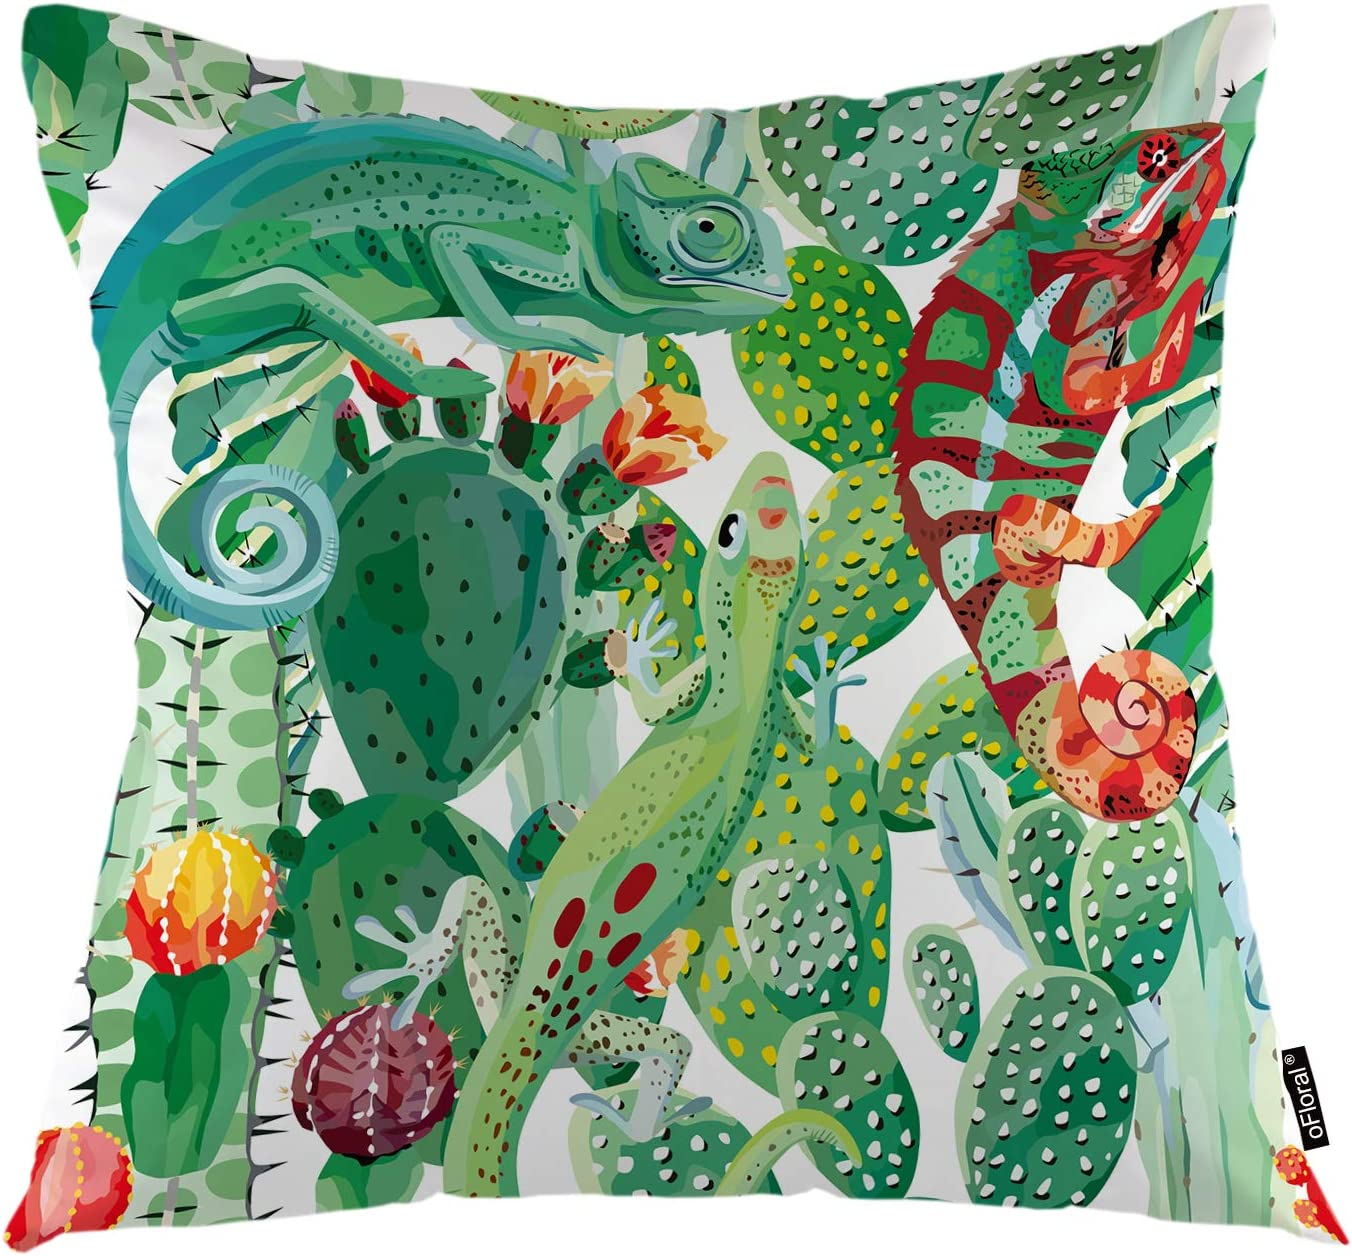 oFloral Cactus Throw Pillow Cover Tropical Cacti Plant Chameleon Animal Wild Flowers Decorative Pillow Case Home Decor for Sofa Bedroom Liveroom 18x18 Inch Pillowcase